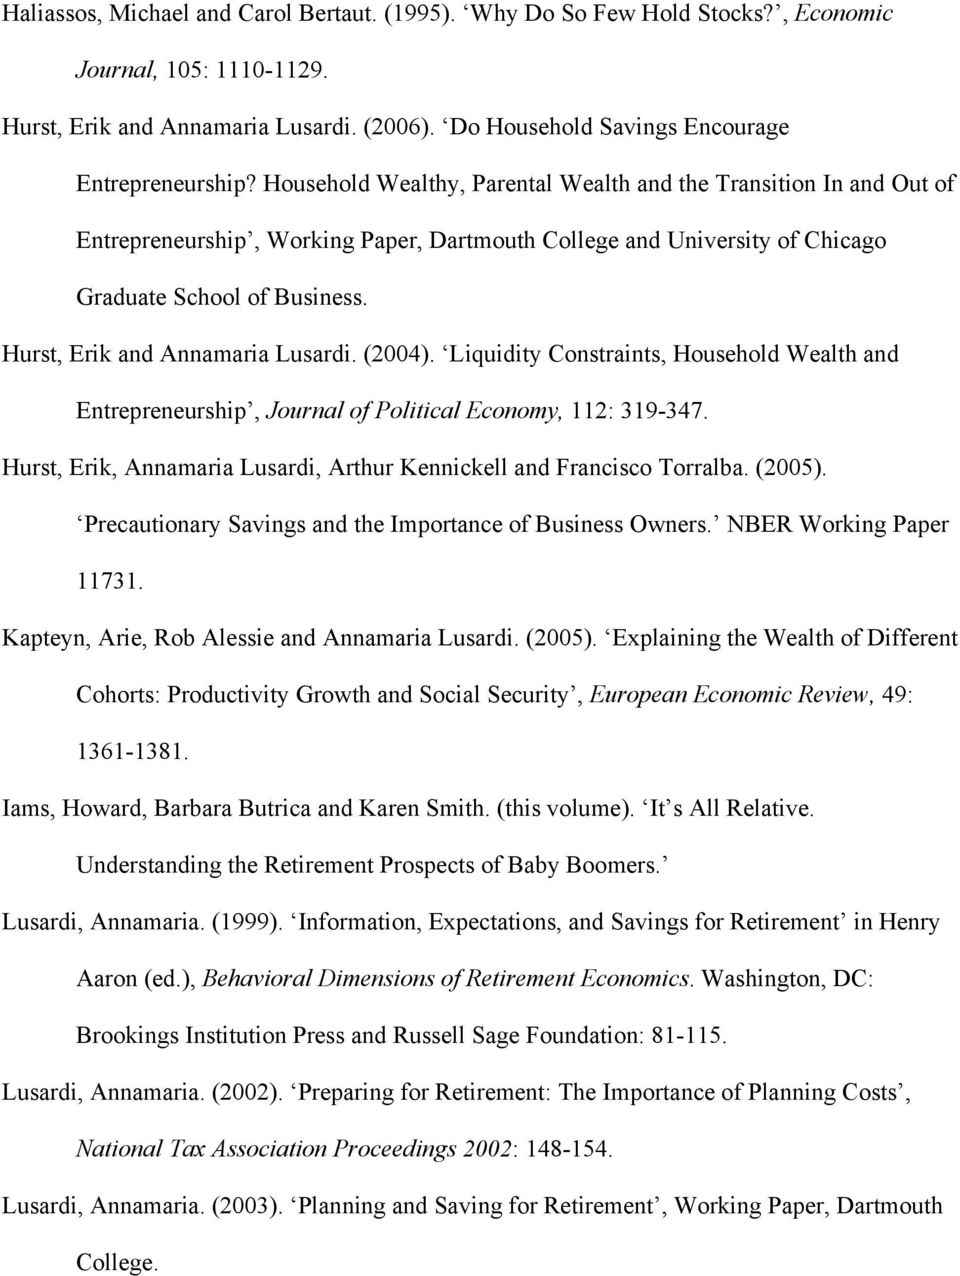 Hurst, Erik and Annamaria Lusardi. (2004). Liquidity Constraints, Household Wealth and Entrepreneurship, Journal of Political Economy, 112: 319-347.